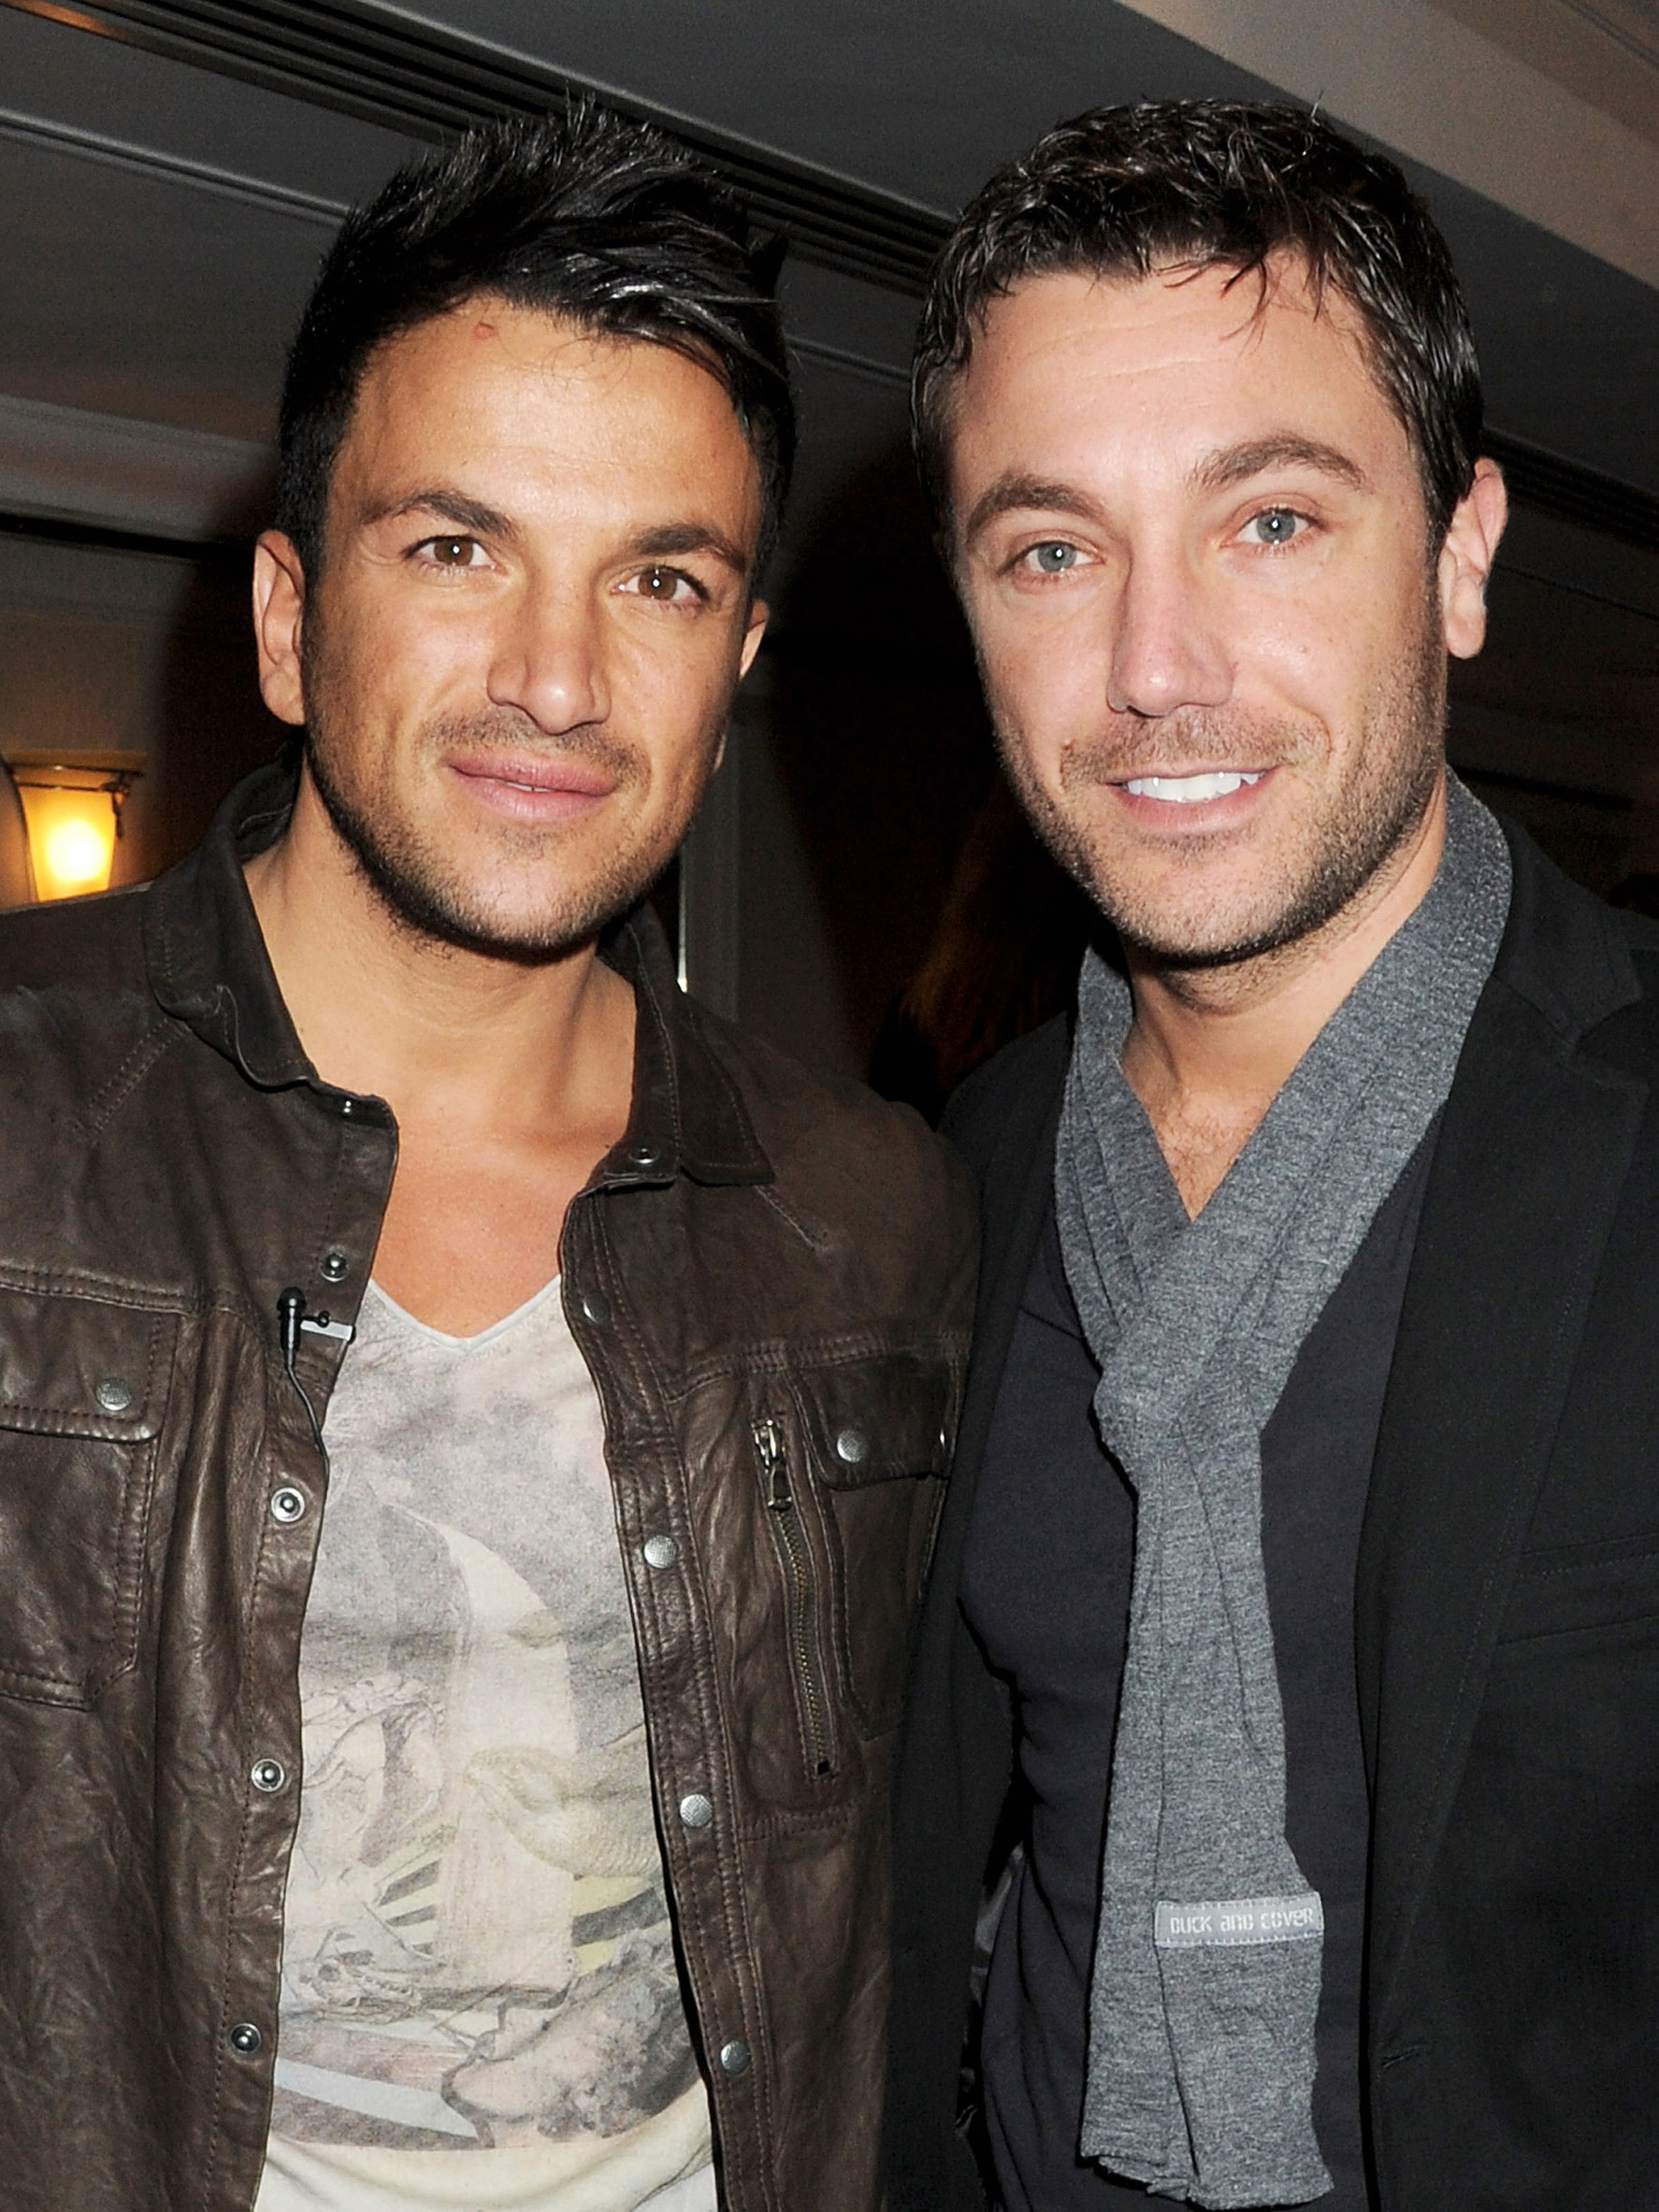 Peter Andre has started a hilarious feud with Gino D'Acampo